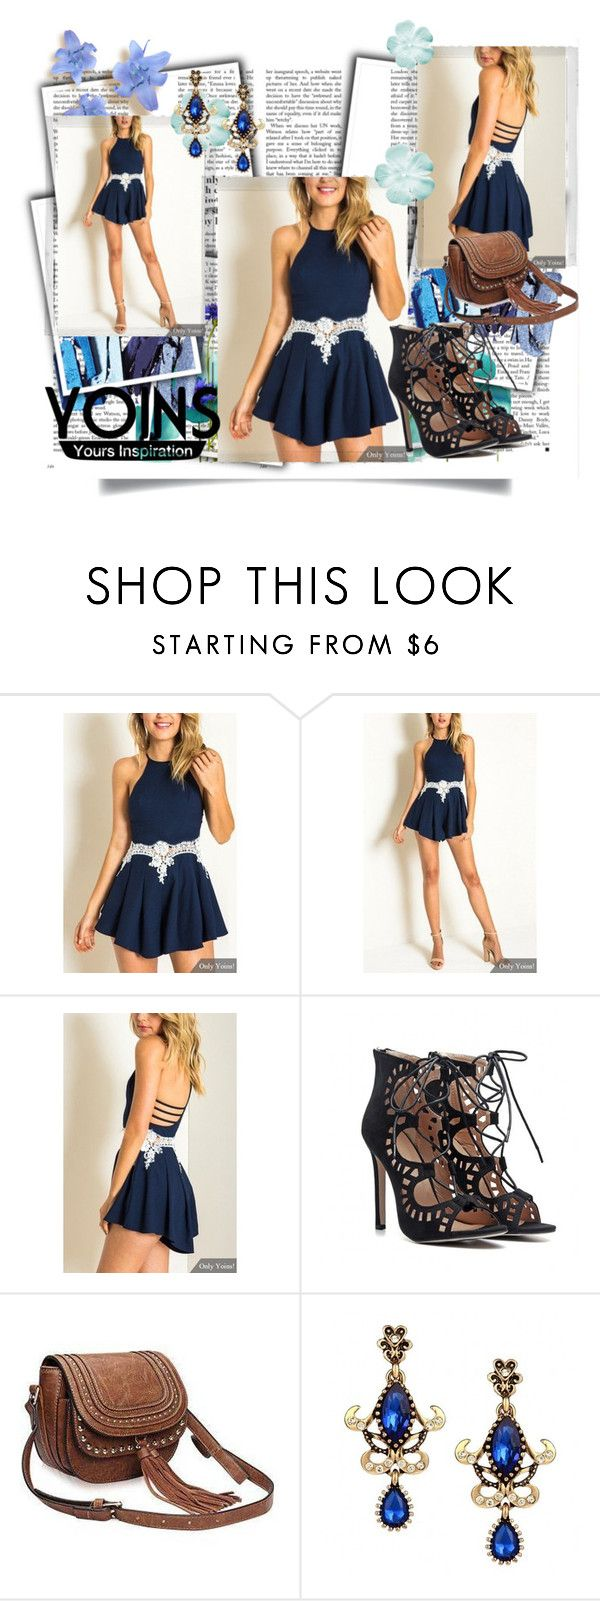 """YOINS Playsuit-Contest"" by ramonaaleksandrova ❤ liked on Polyvore featuring Polaroid and yoins"